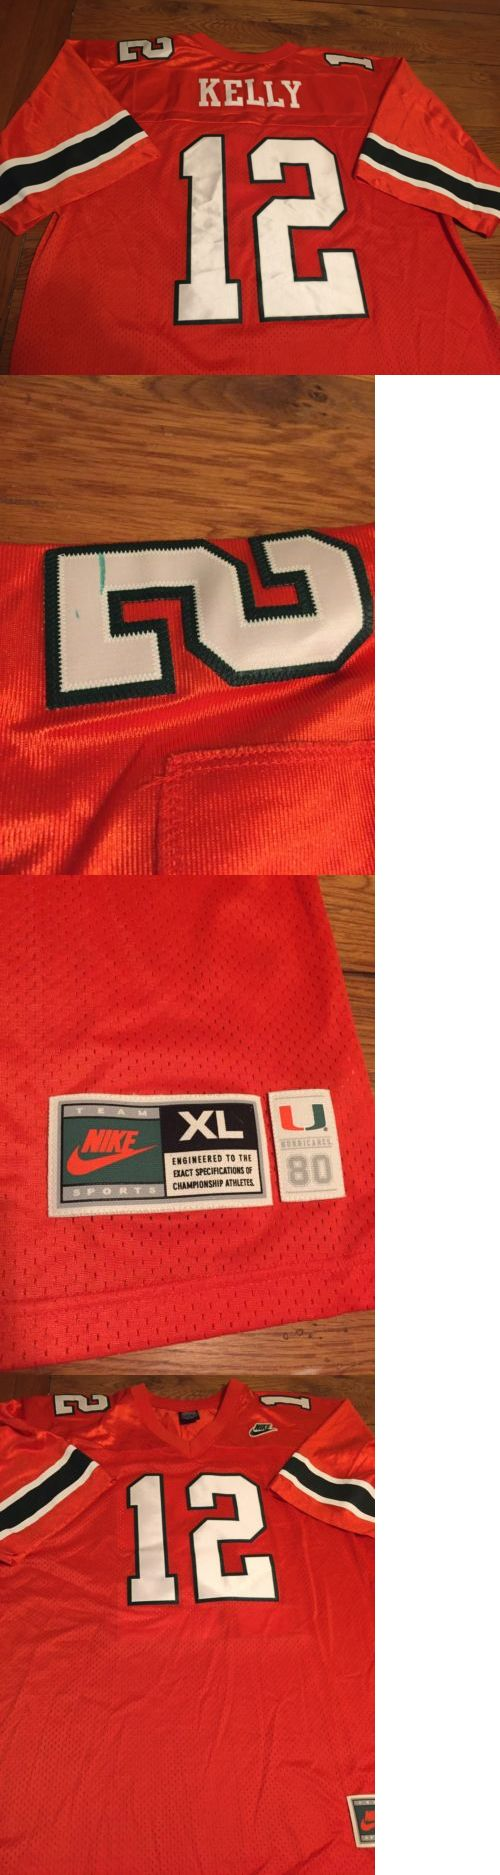 wholesale dealer c718d 9b08b Other Football Clothing and Accs 74676: Nike Jim Kelly Sewn ...